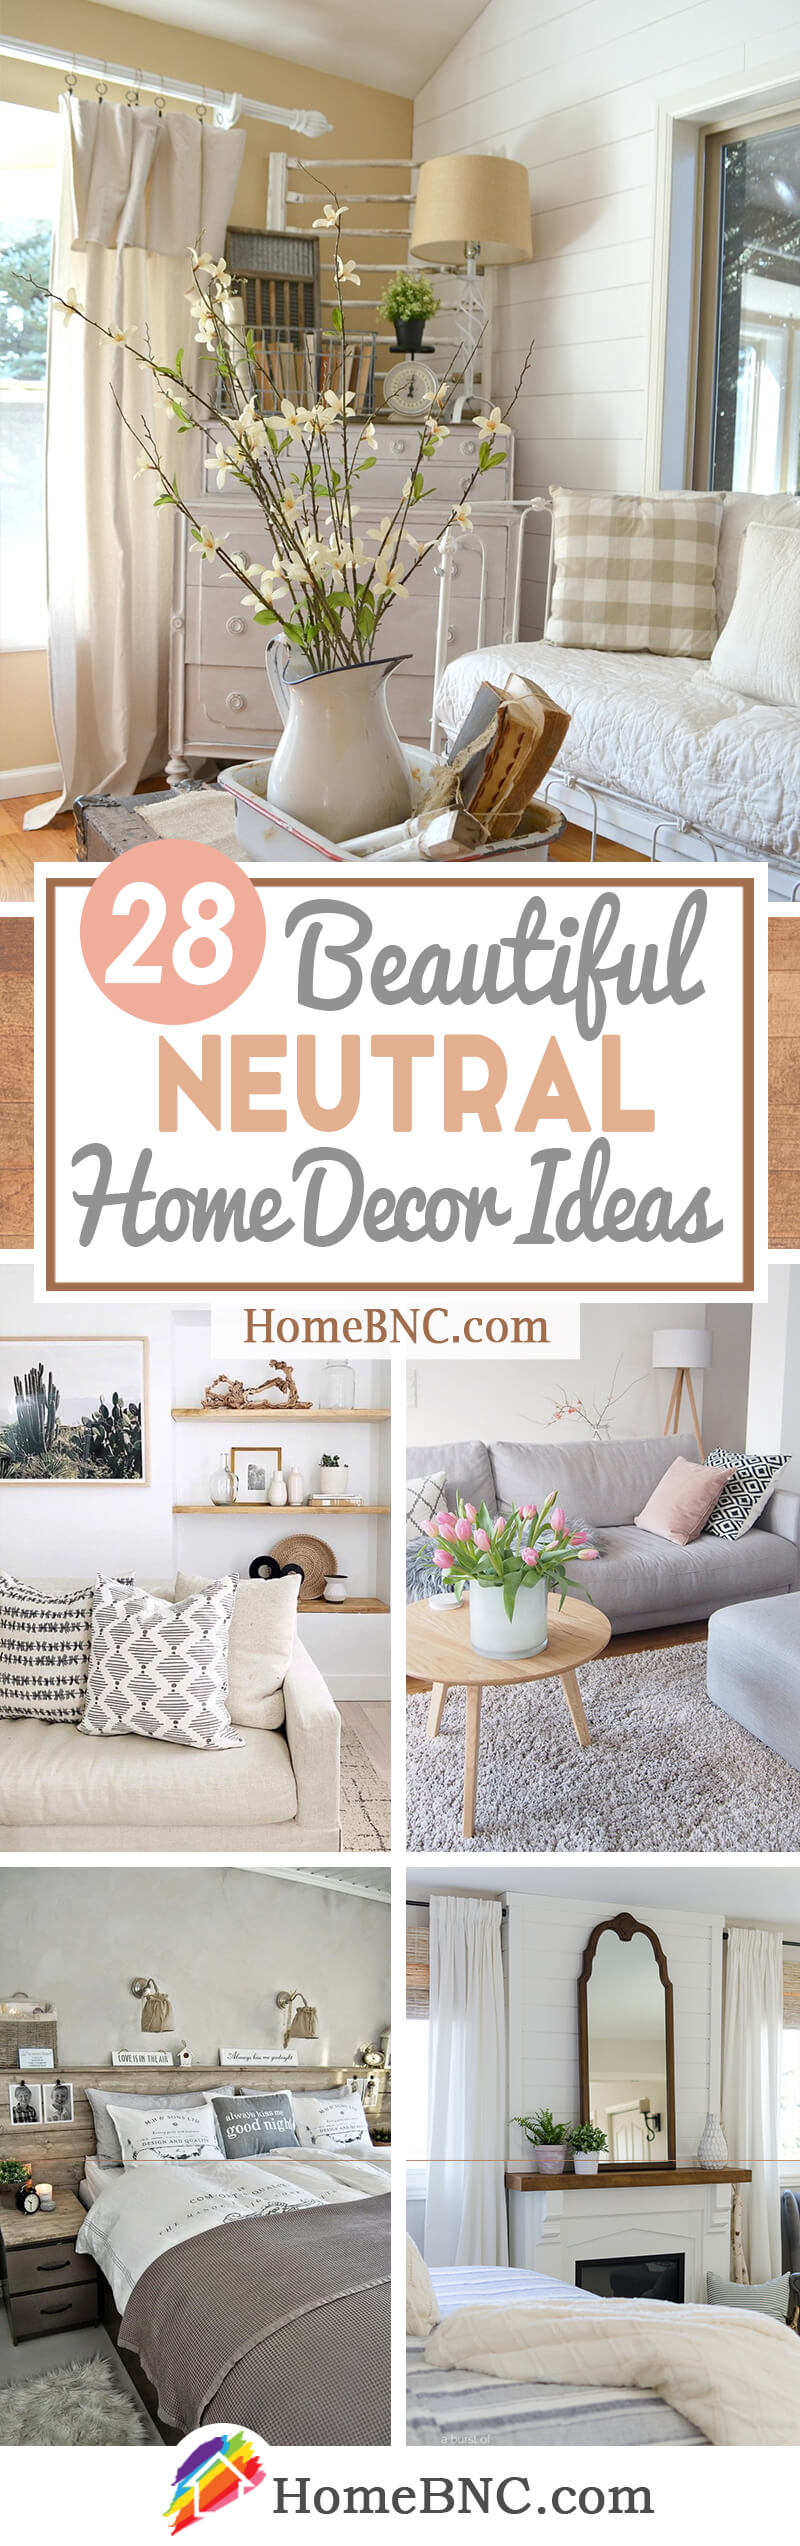 Neutral Home Decor Ideas